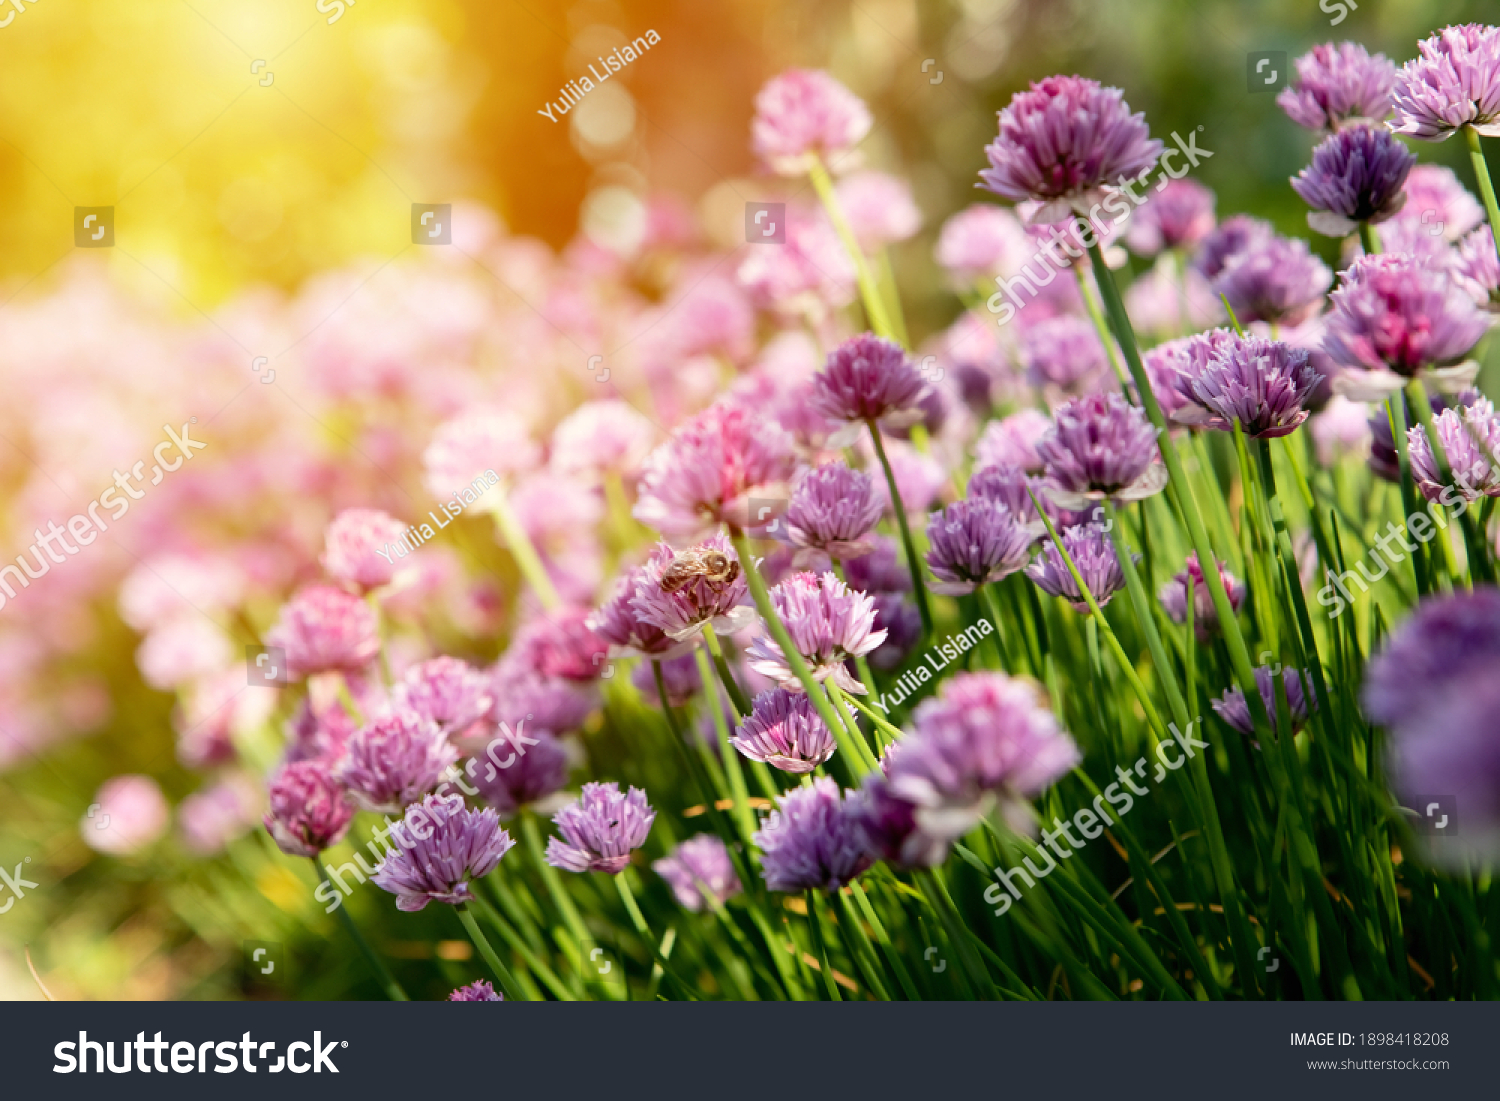 Blooming clover bushes with sunlight in the background. Bumblebee sits on pink clover flower on green grass background close up, bumble bee on blooming purple clover on sunny day #1898418208